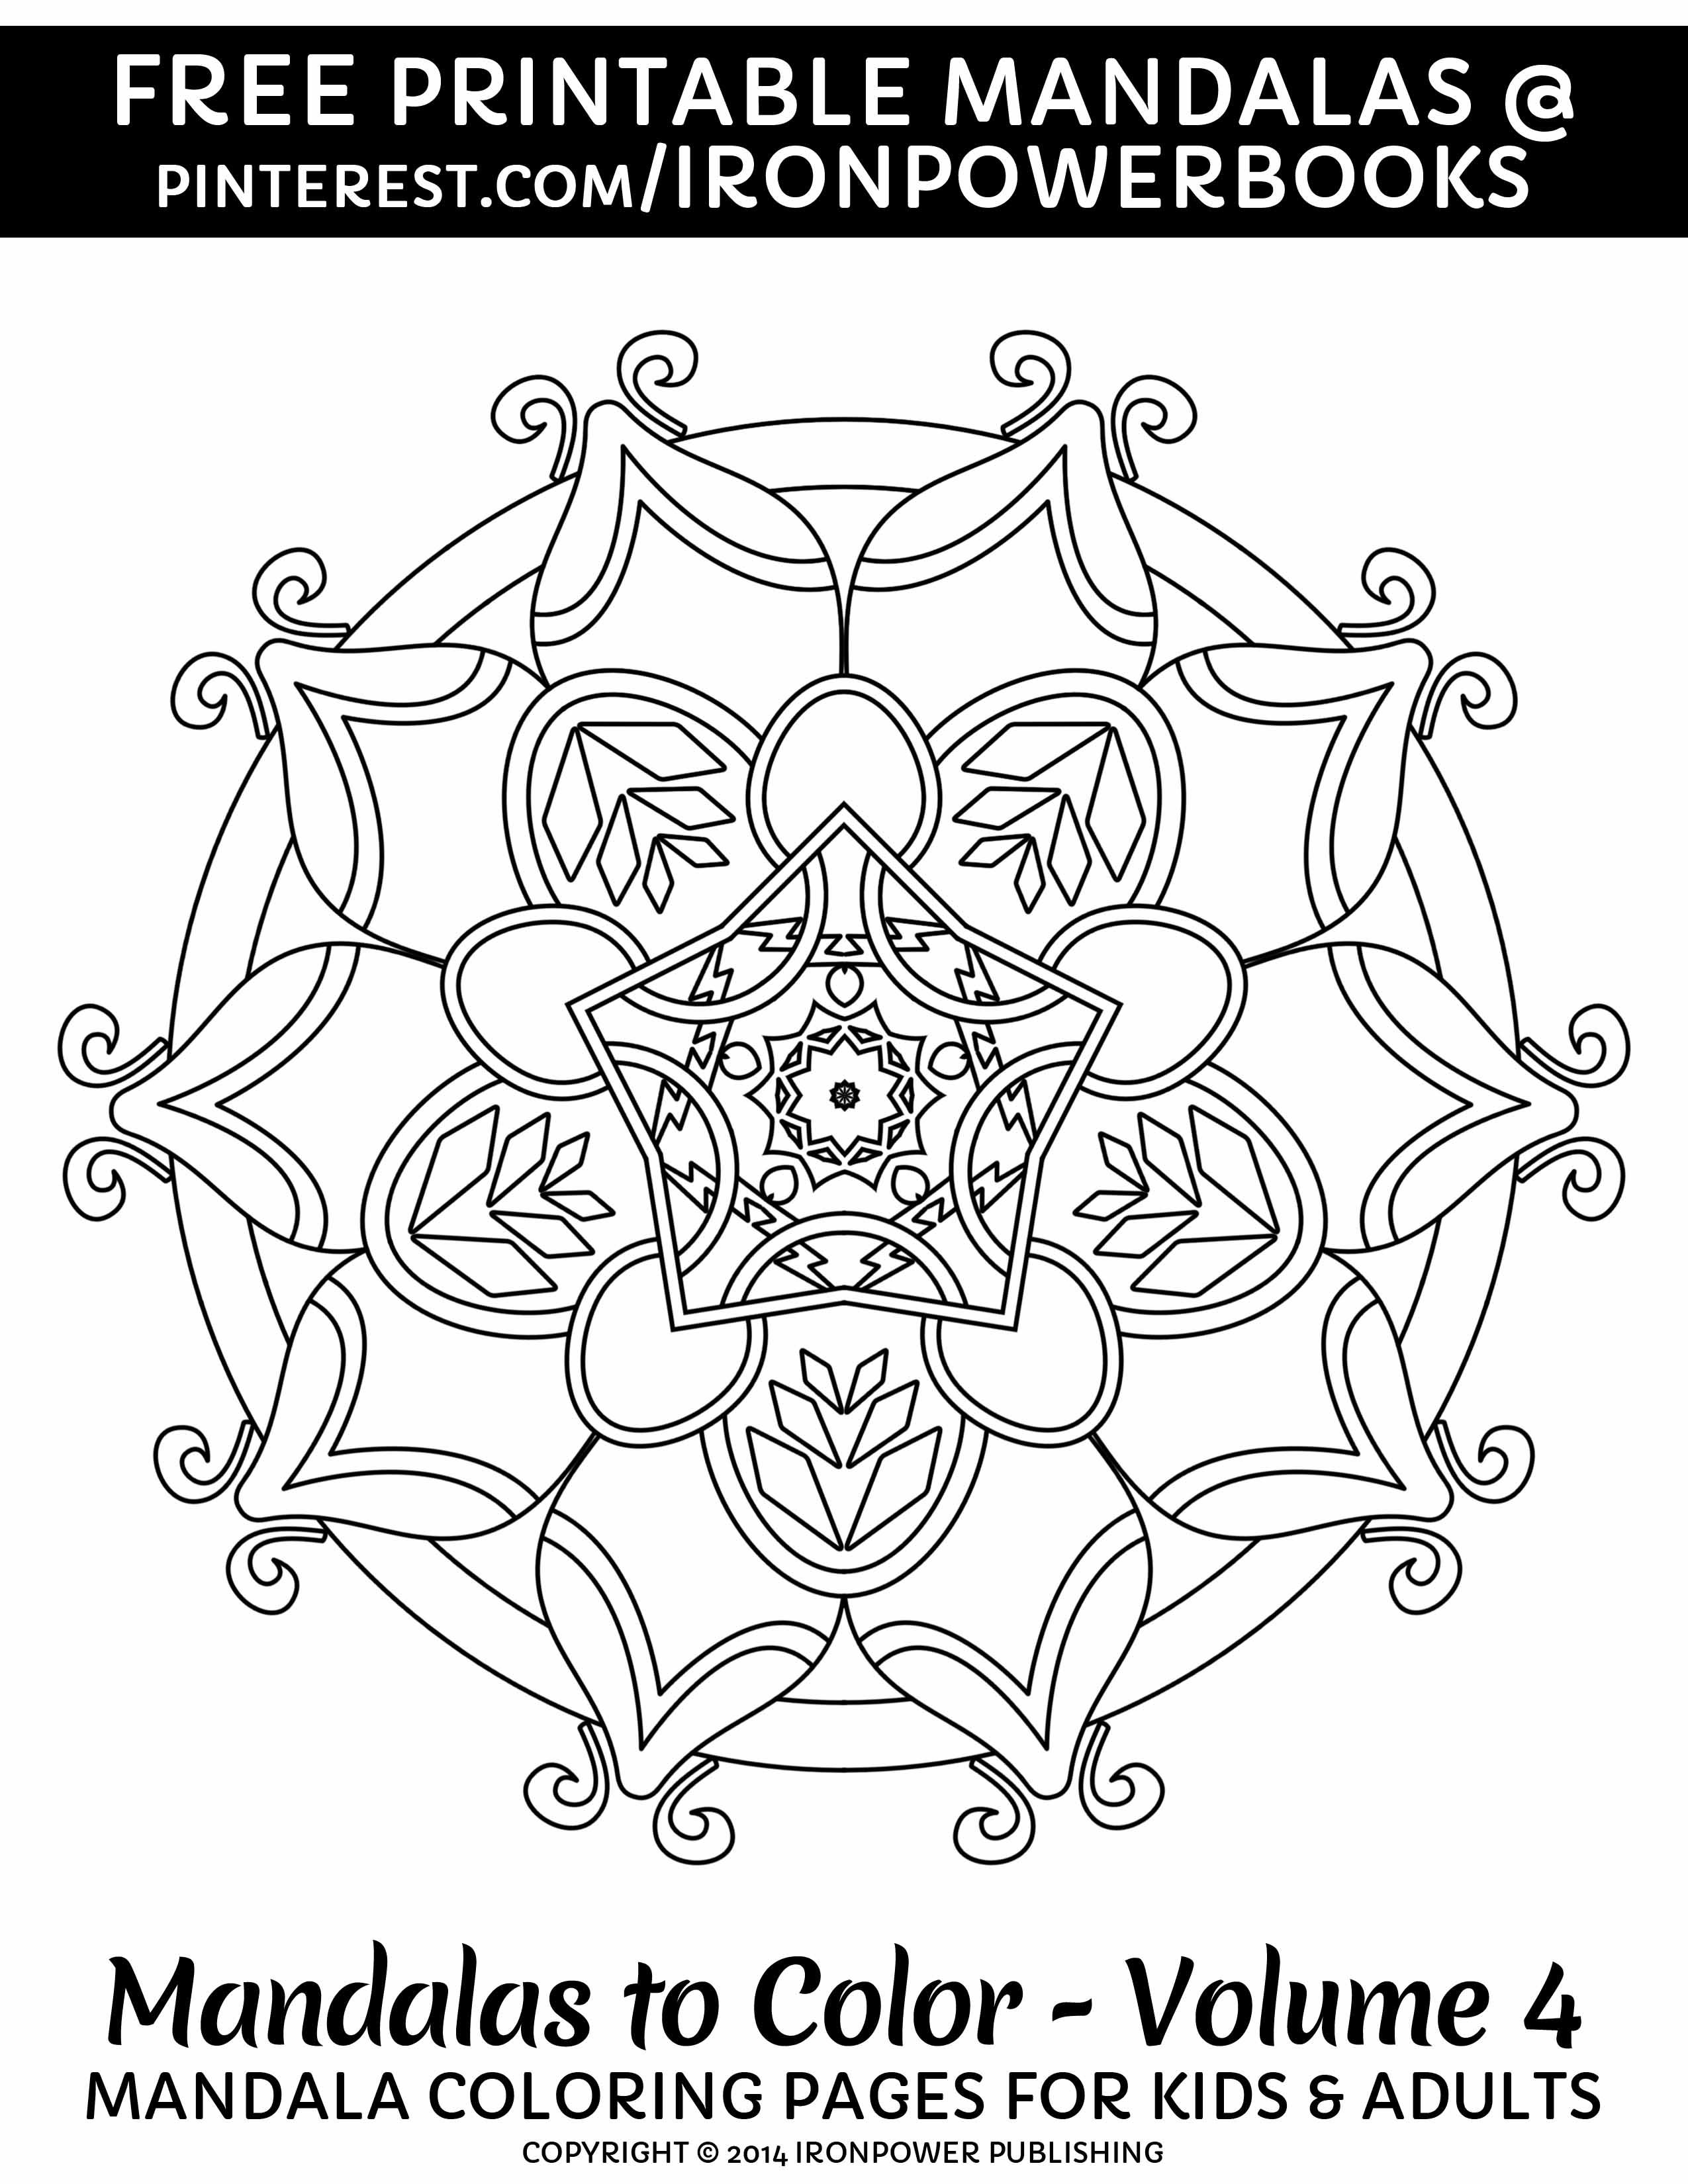 Mandala coloring pages amazon - Fun Coloring This Summer With This Free Printable Mandala Coloring Pages For A Paperback Copy